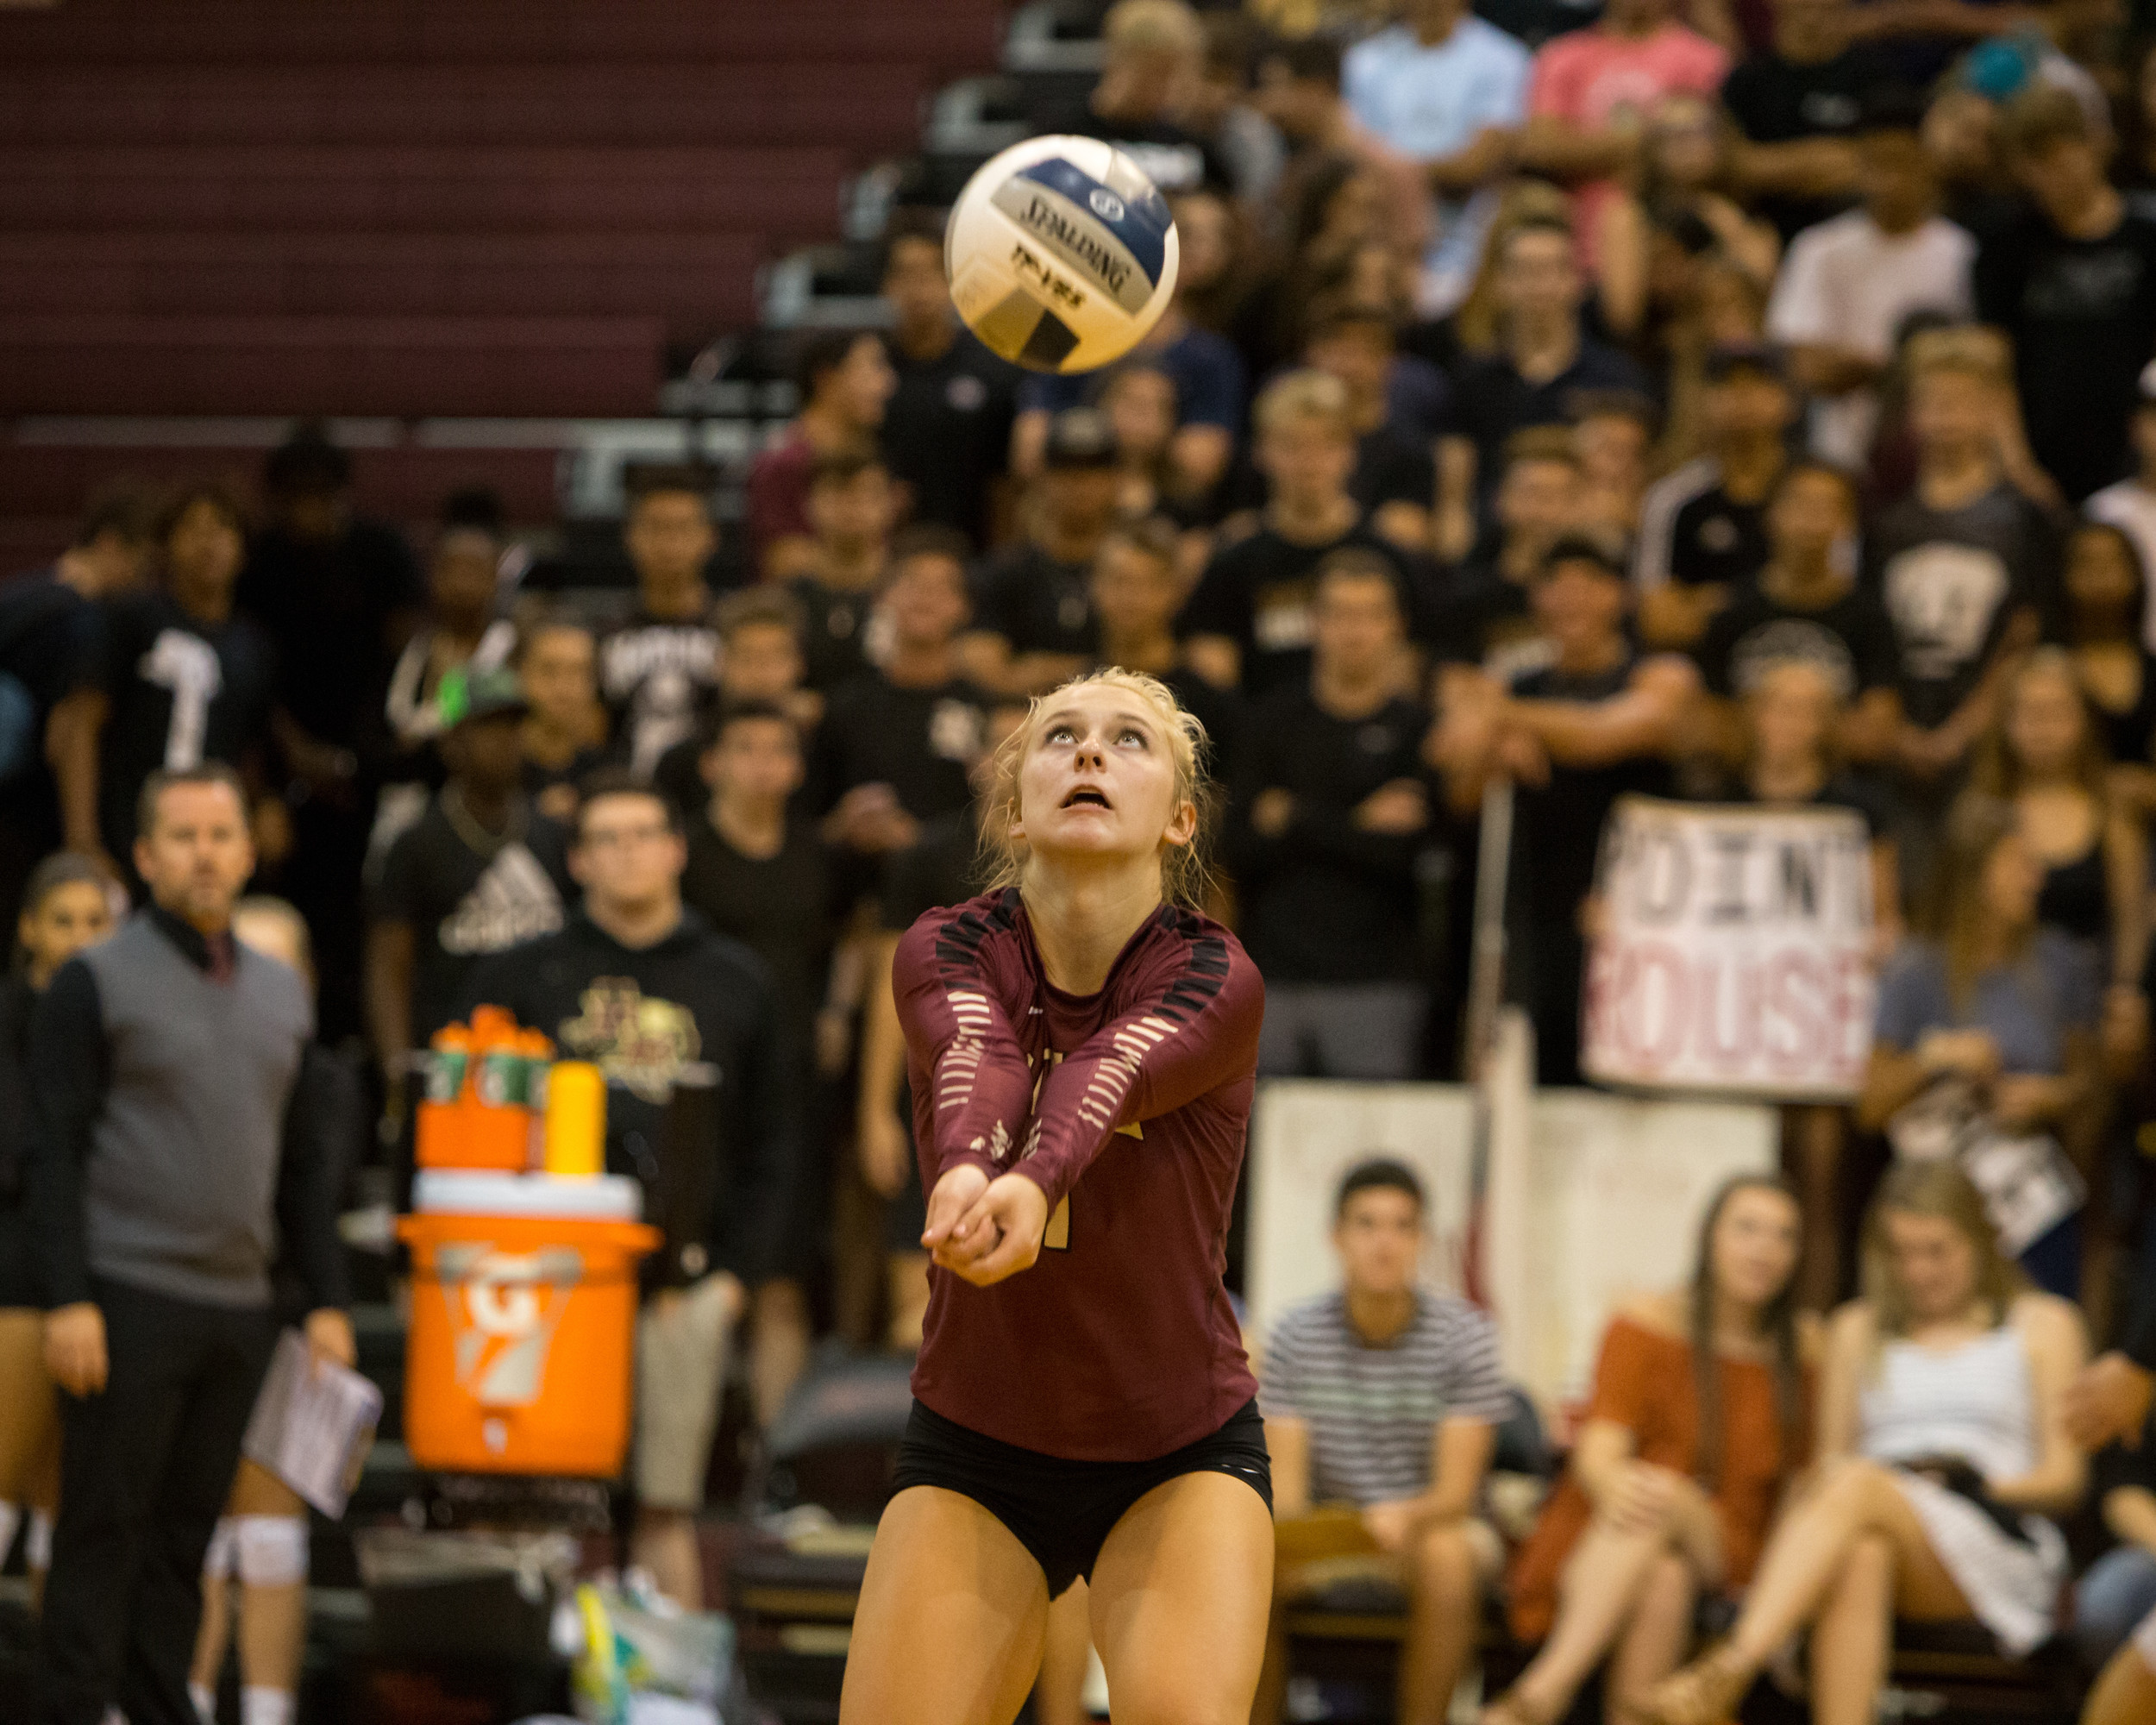 Katy Northcut and Rouse are ranked No. 1 in the state and have won 39 straight sets as of Monday morning.